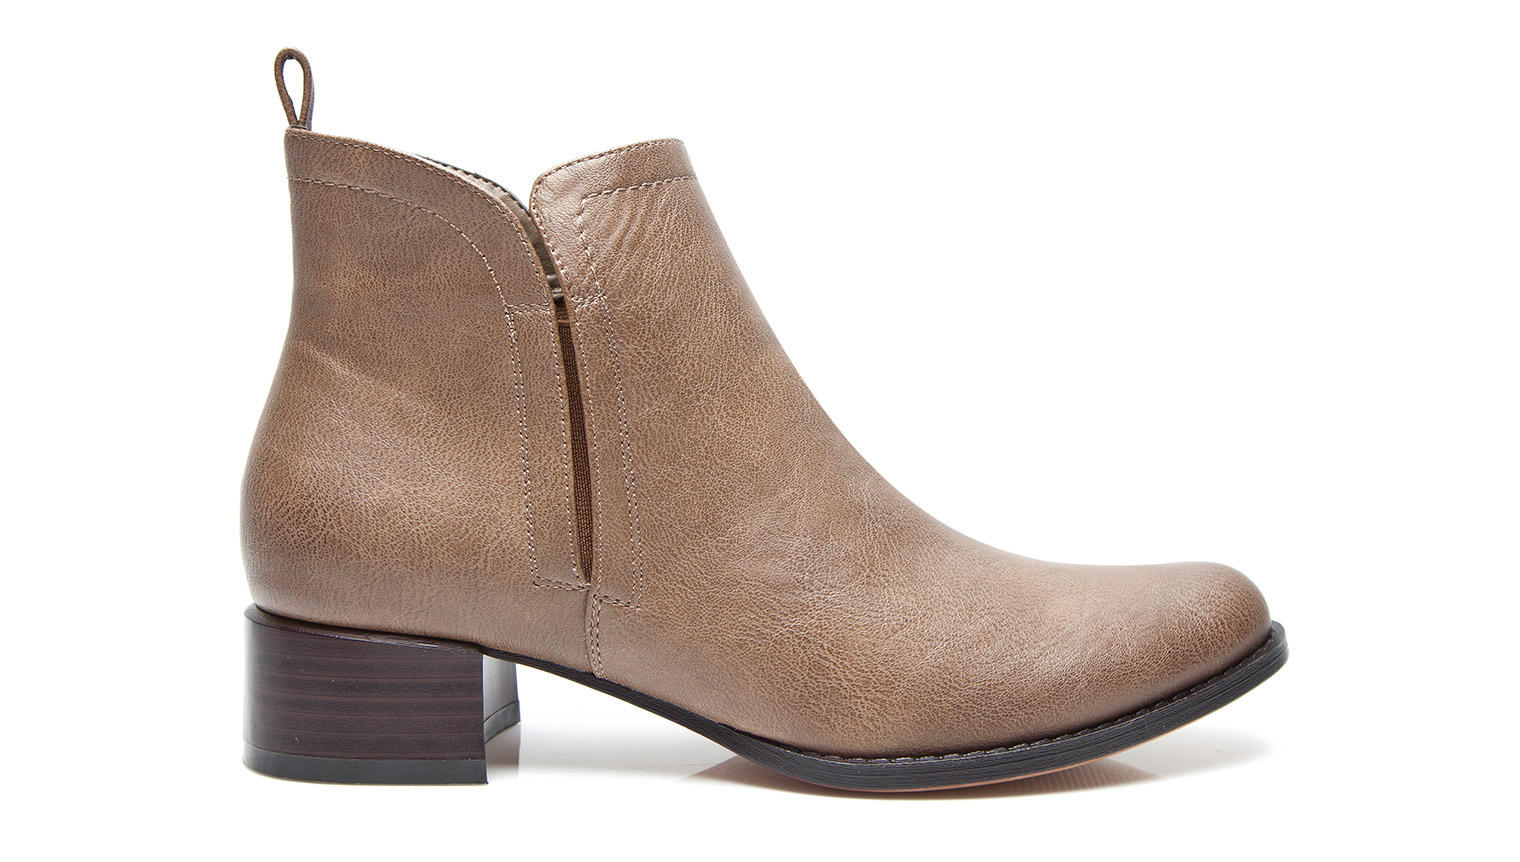 KUSTOM SHOES SELINA BOOT / TAUPE